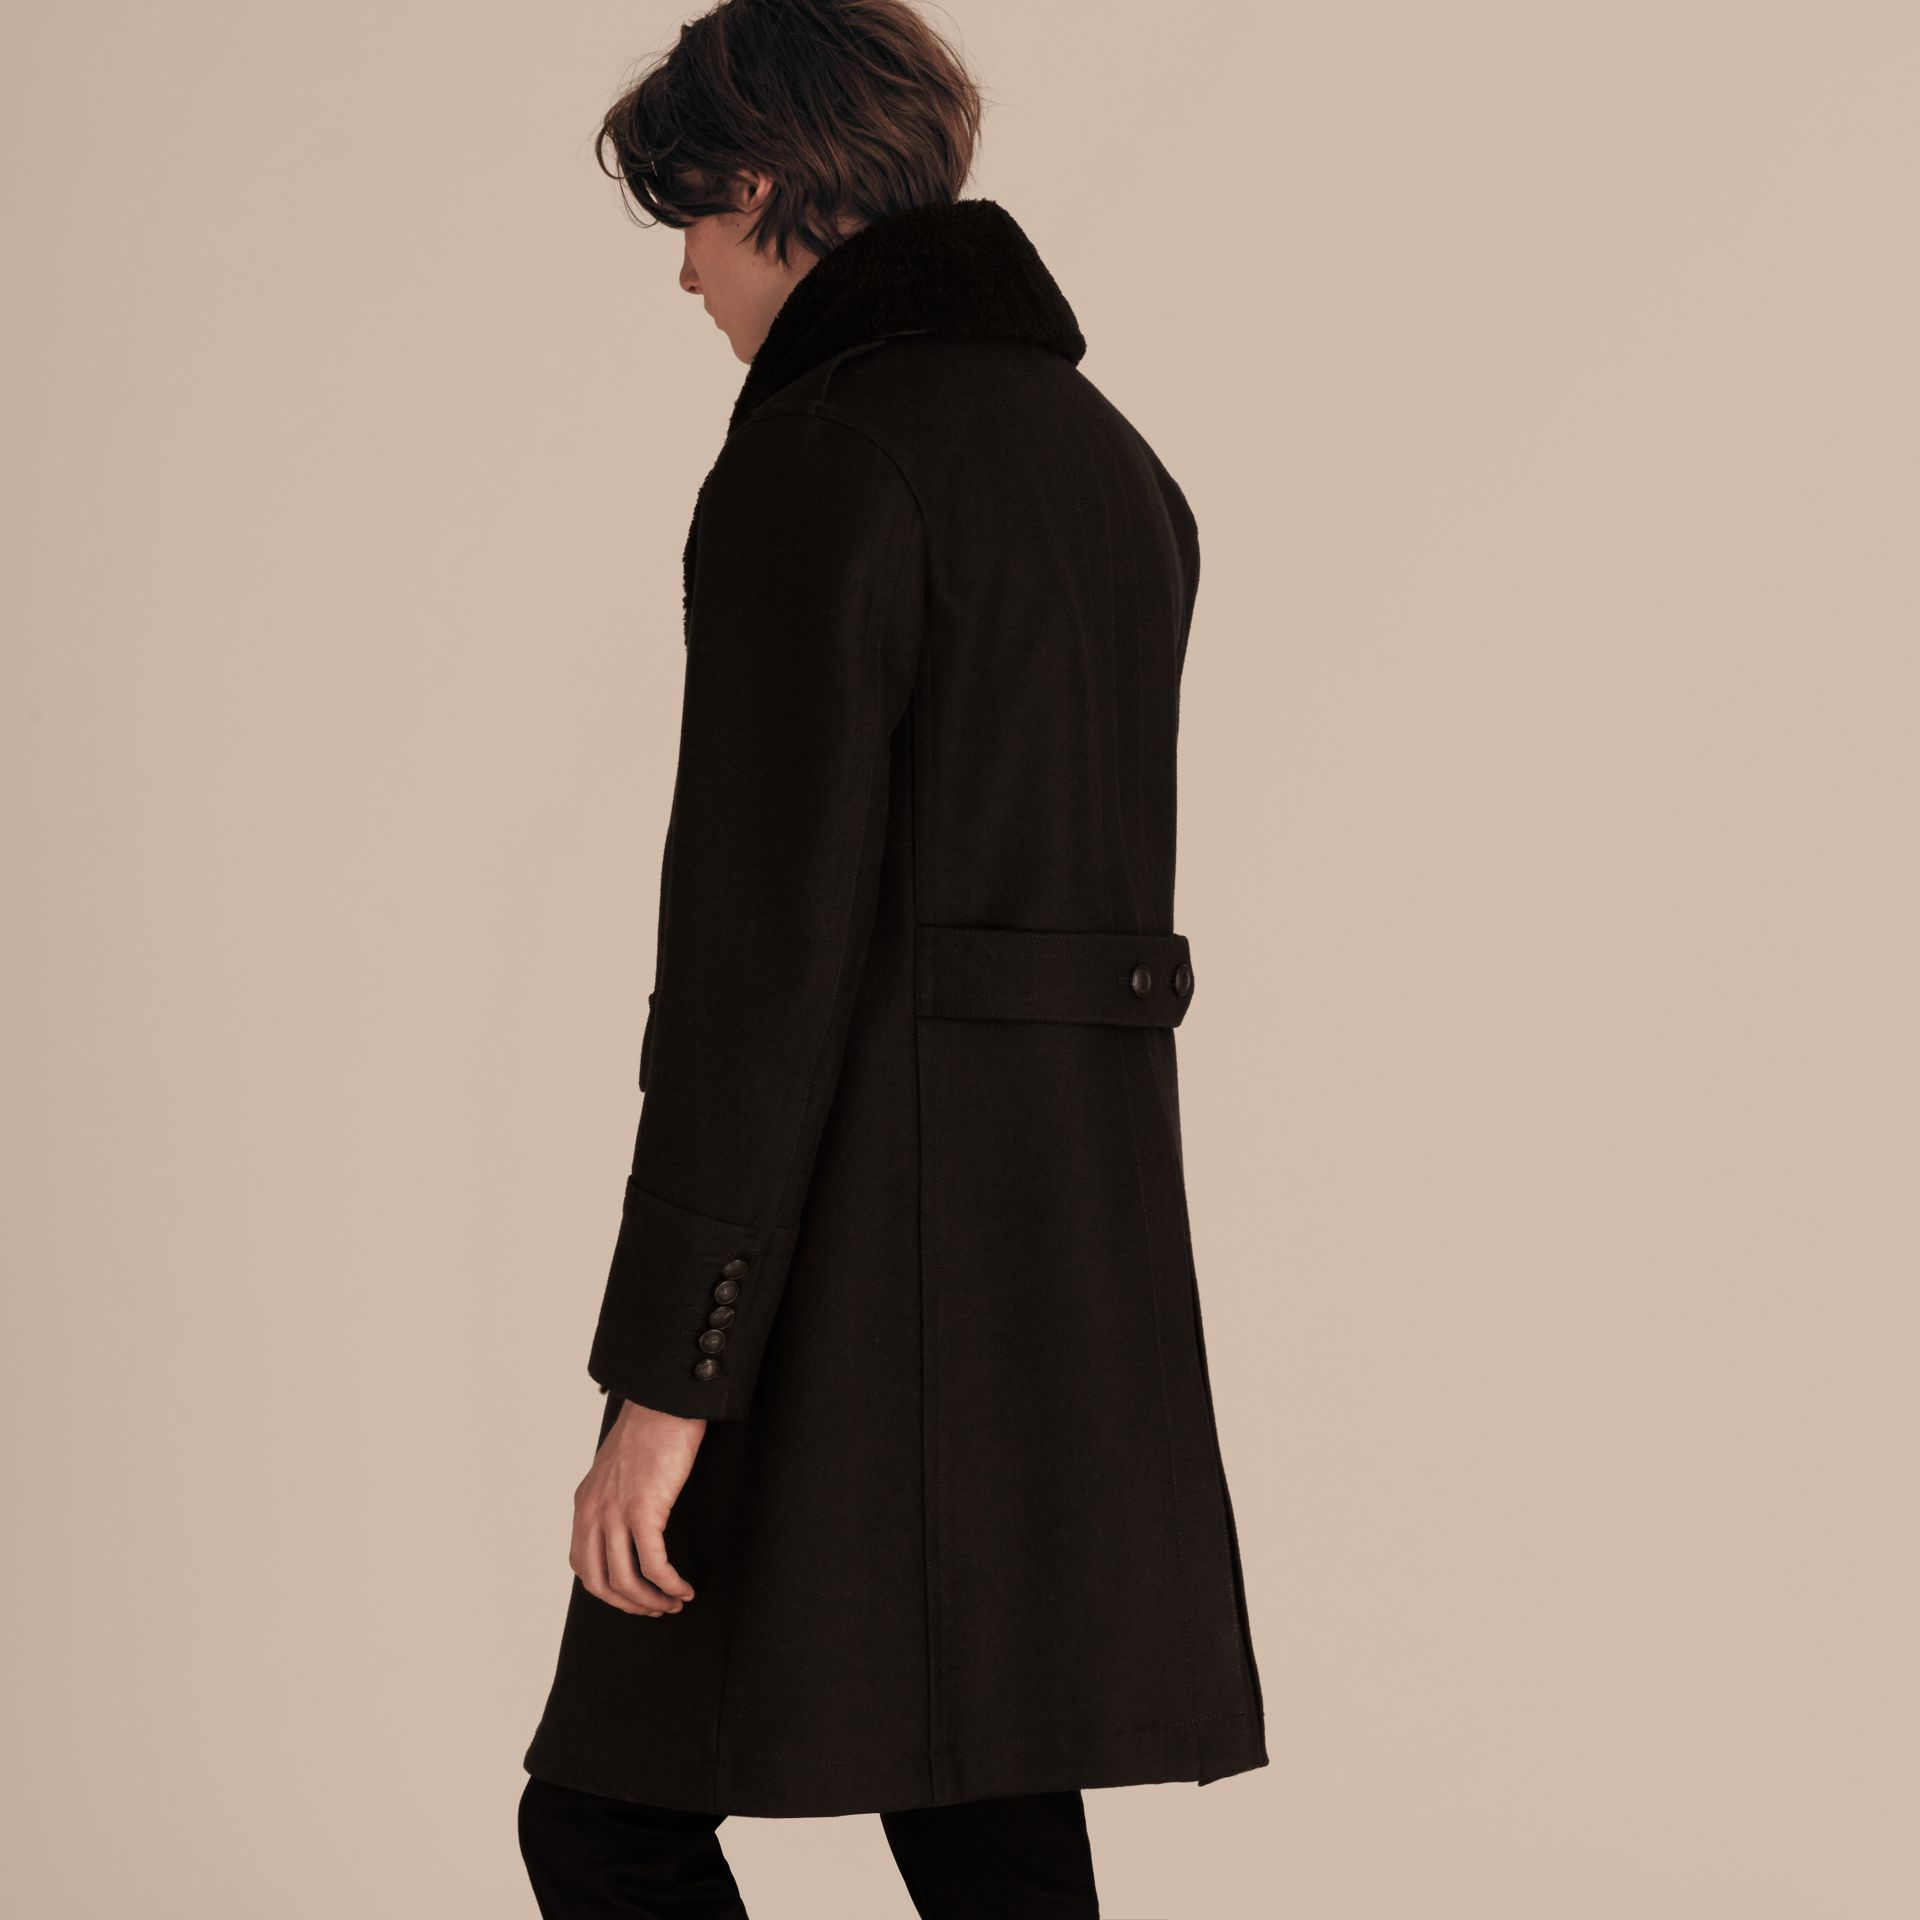 Black Technical Wool Greatcoat with Detachable Shearling Collar - gallery image 3